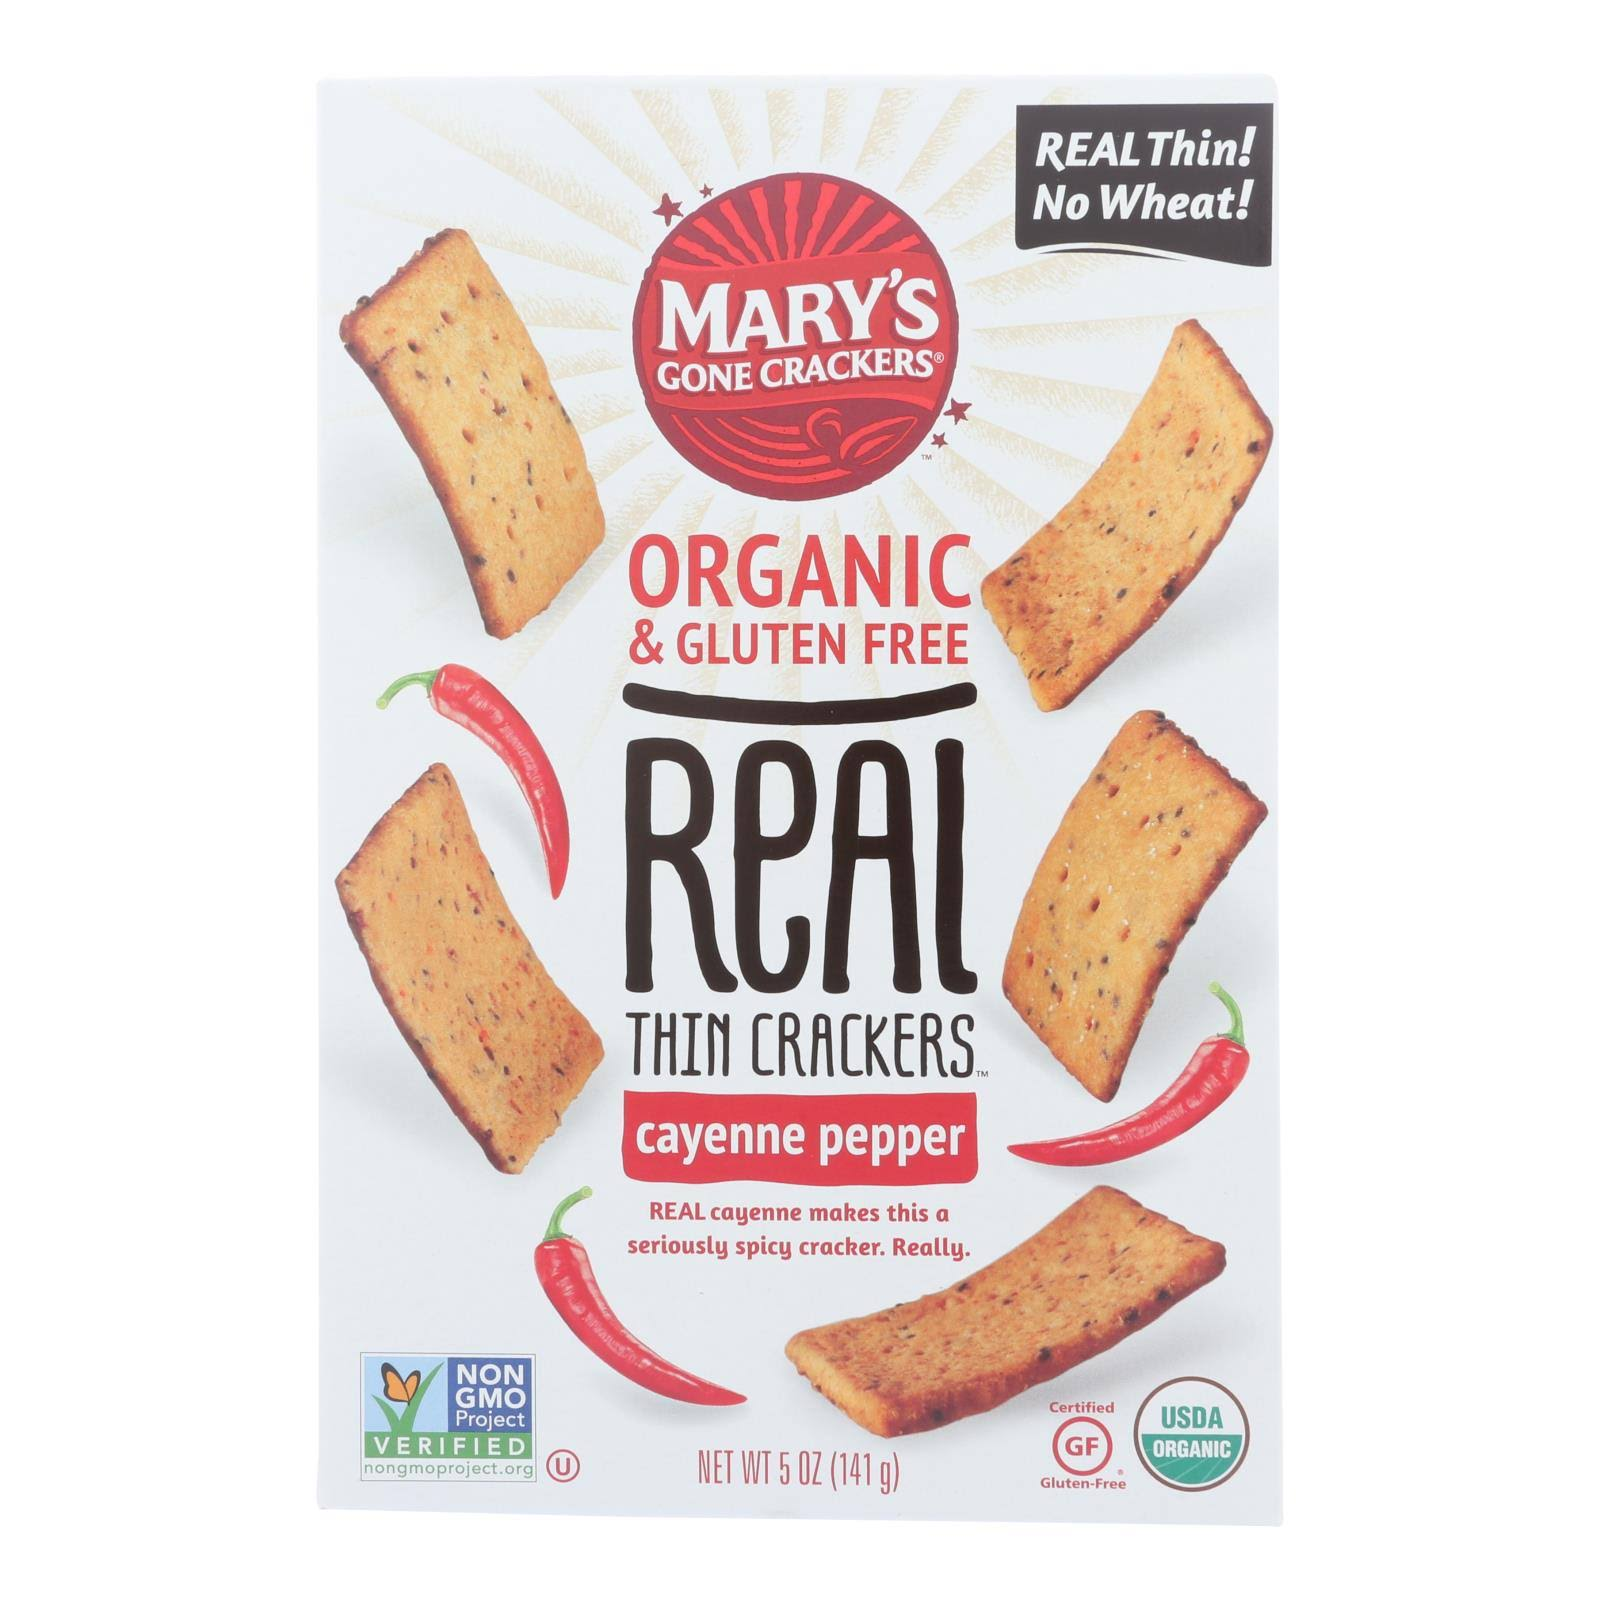 Marys Gone Crackers Crackers, Organic & Gluten Free, Cayenne Pepper, Thin - 5 oz